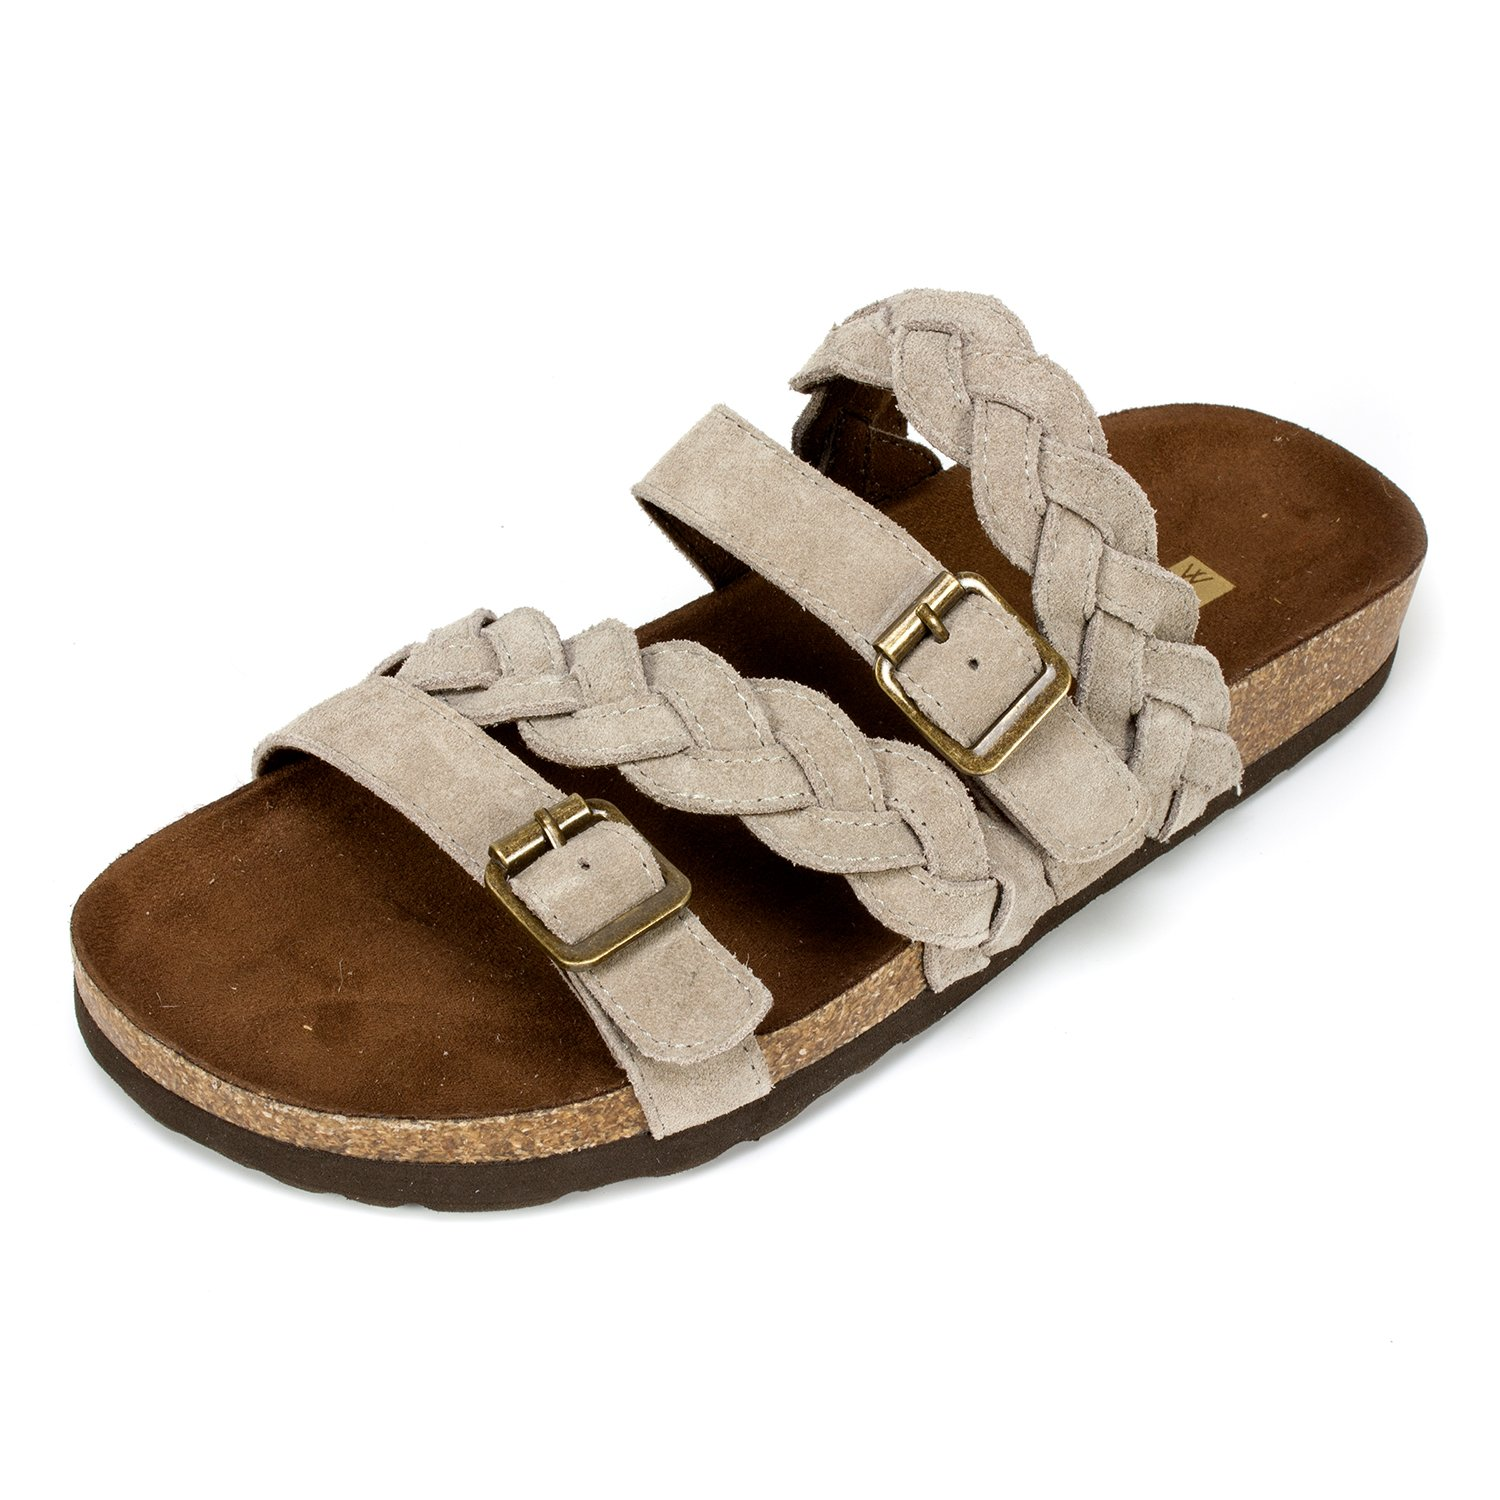 WHITE MOUNTAIN Shoes 'Holland' Women's Sandal B06XKCR5MF 7 M US|Light Taupe